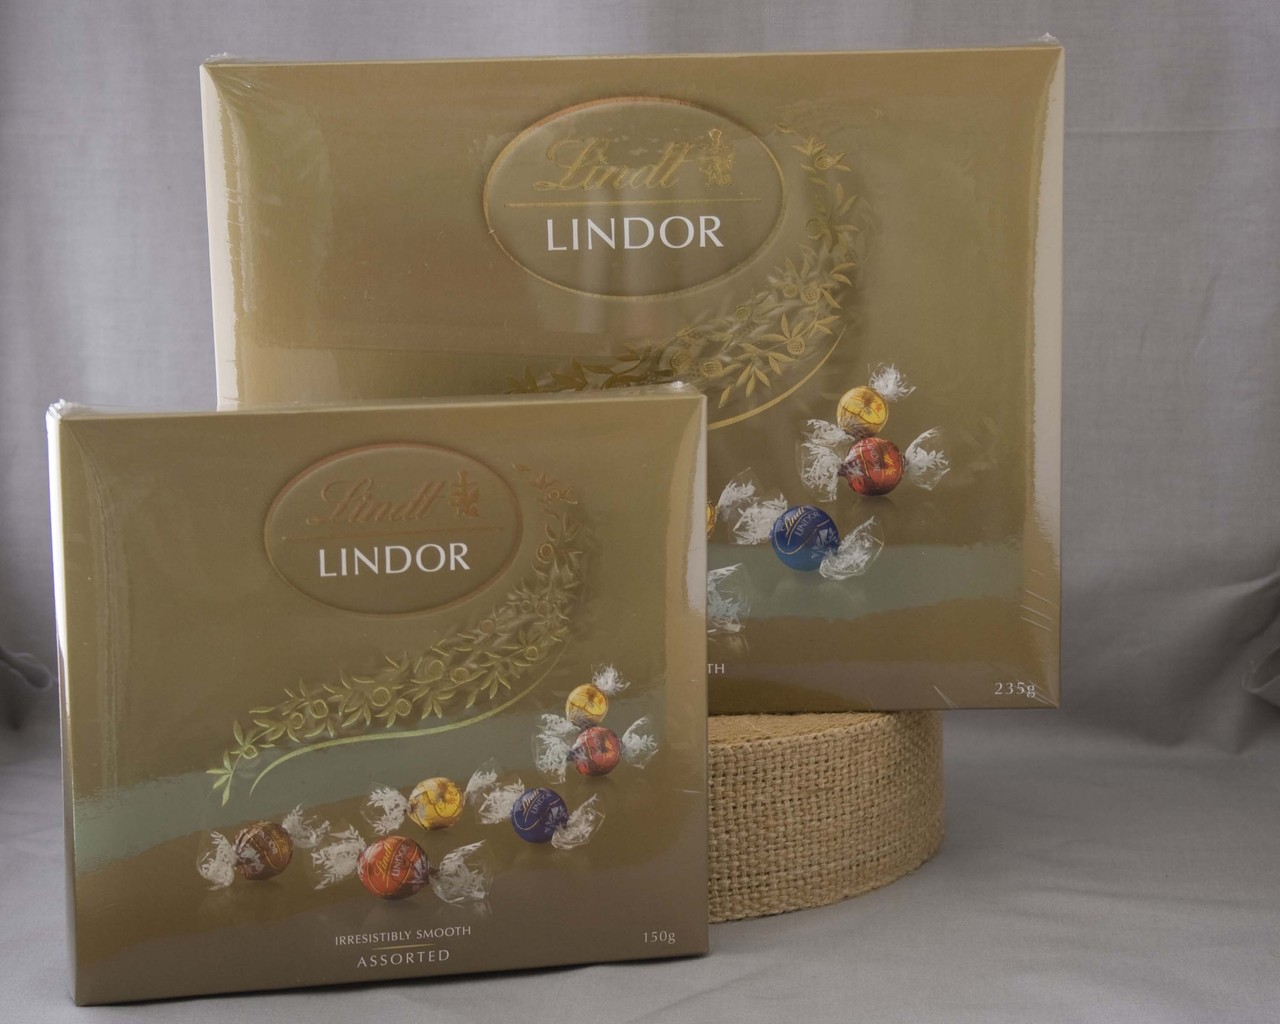 Lindt Lindor - Assorted Chocolates 150g